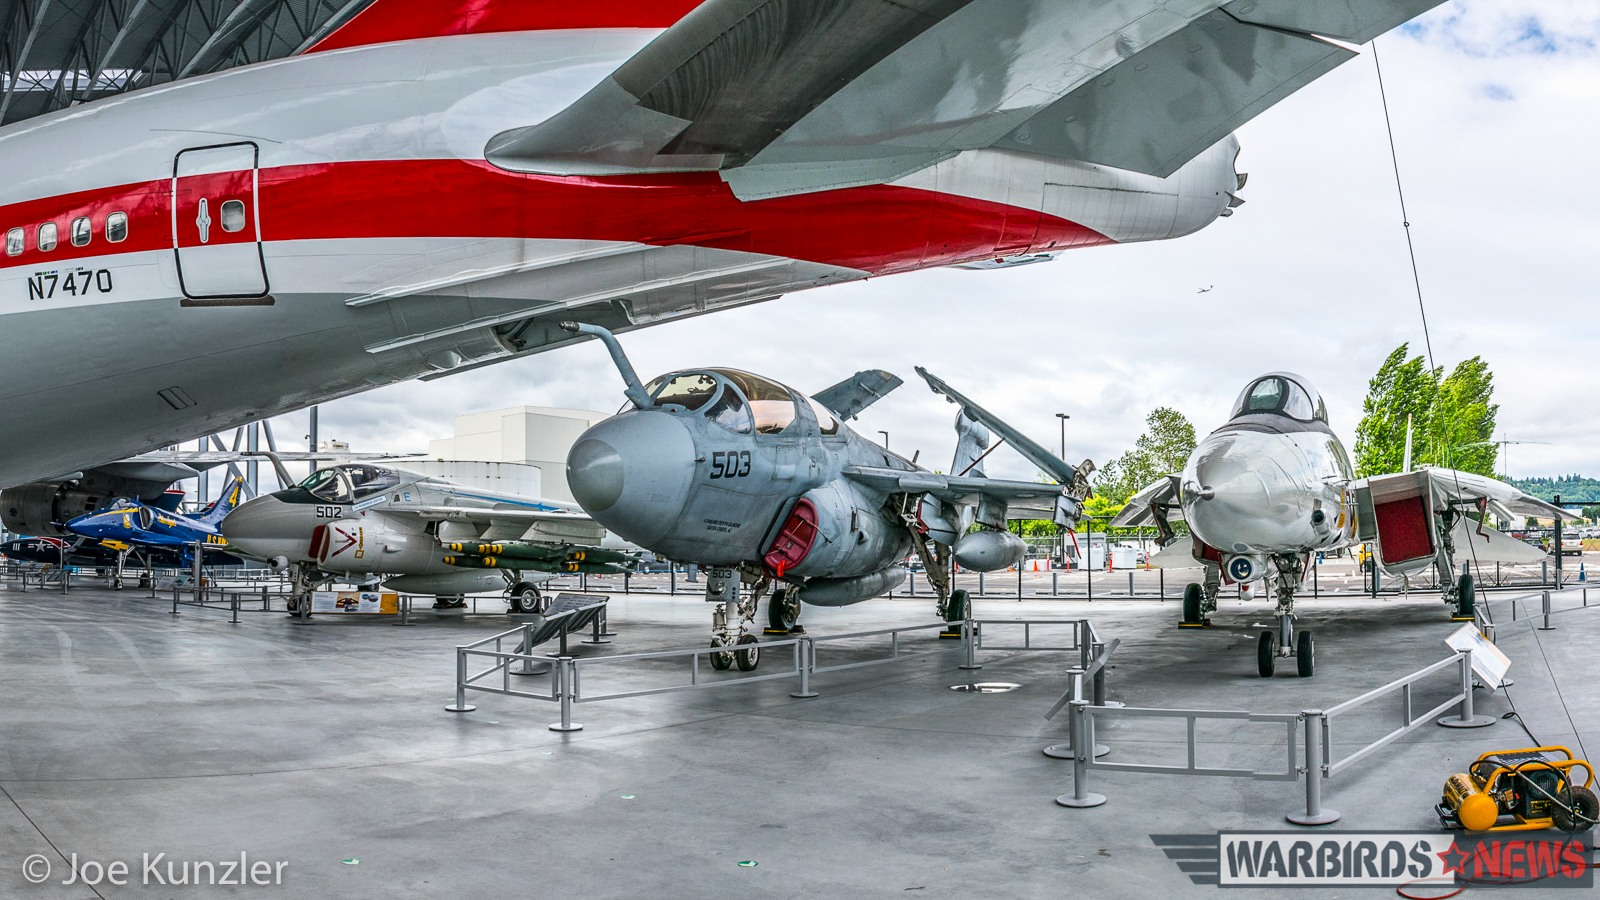 Four Cold War-era naval jets sit beneath the tail of the first 747. (photo by Joe Kunzler)